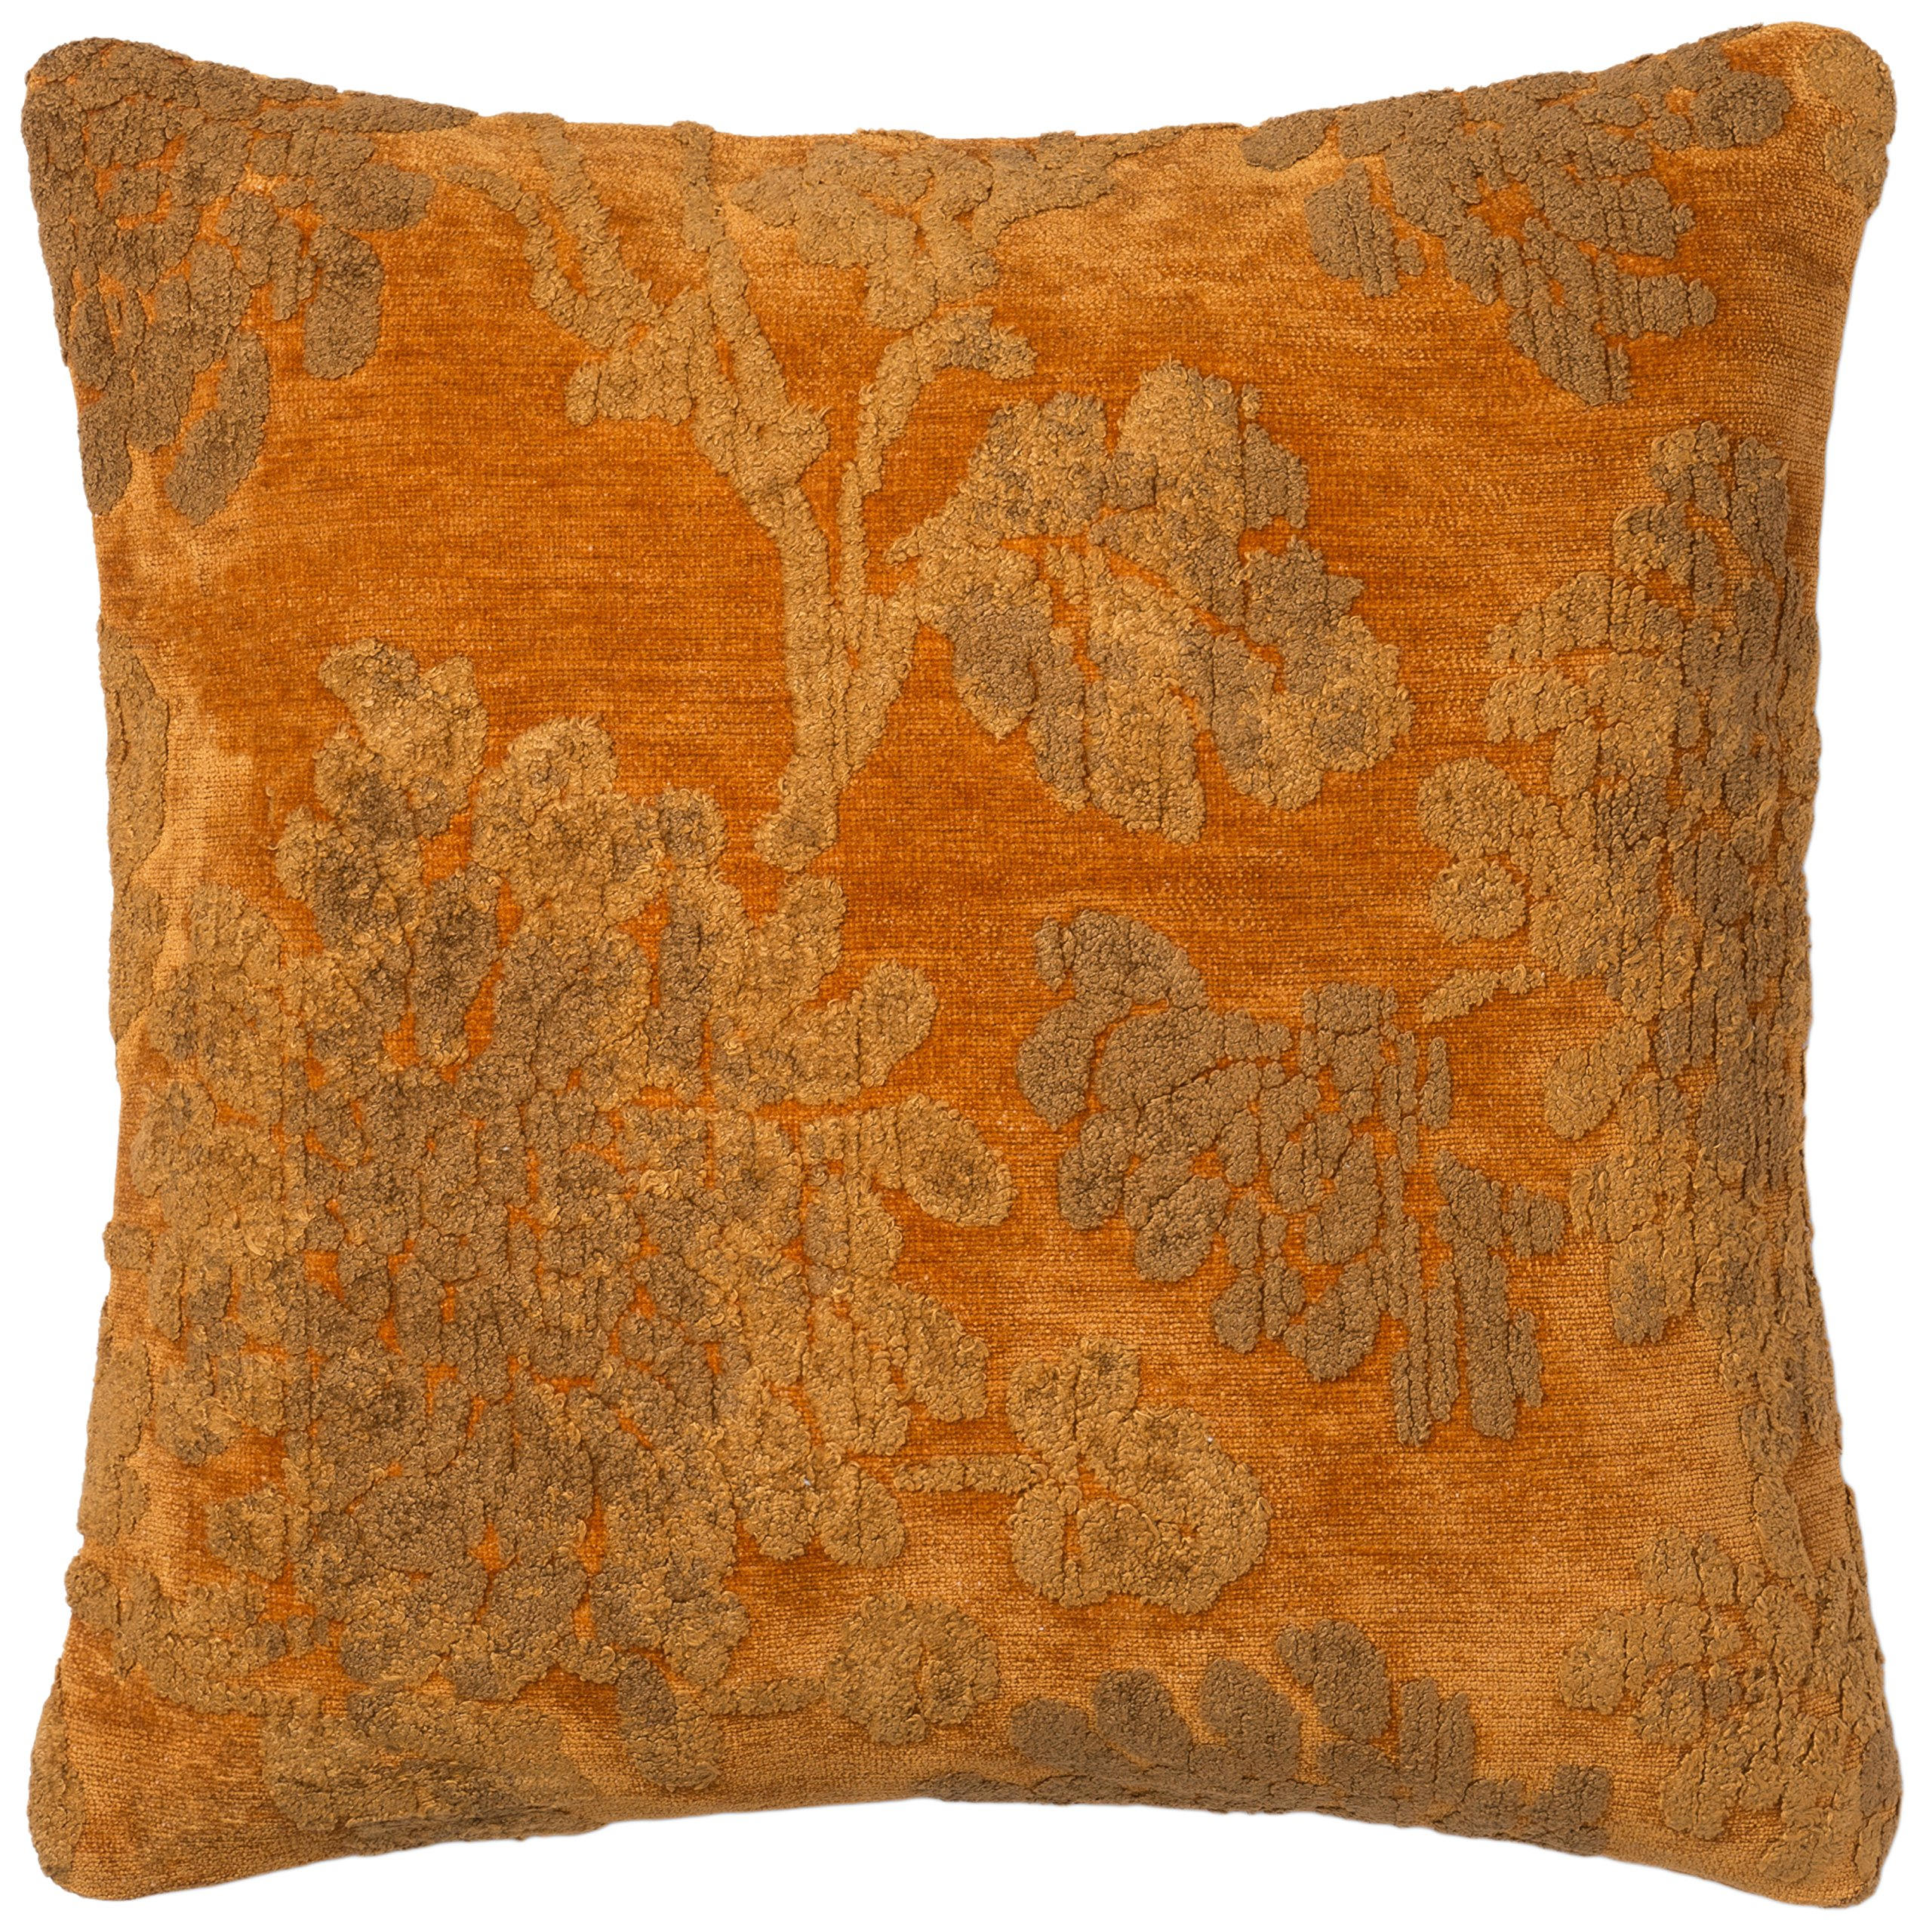 Loloi  Accent  Pillow  DSETGPI13AI00PIL3  Aura  100%  Viscose  with  Down  Fill  22''  x  22''